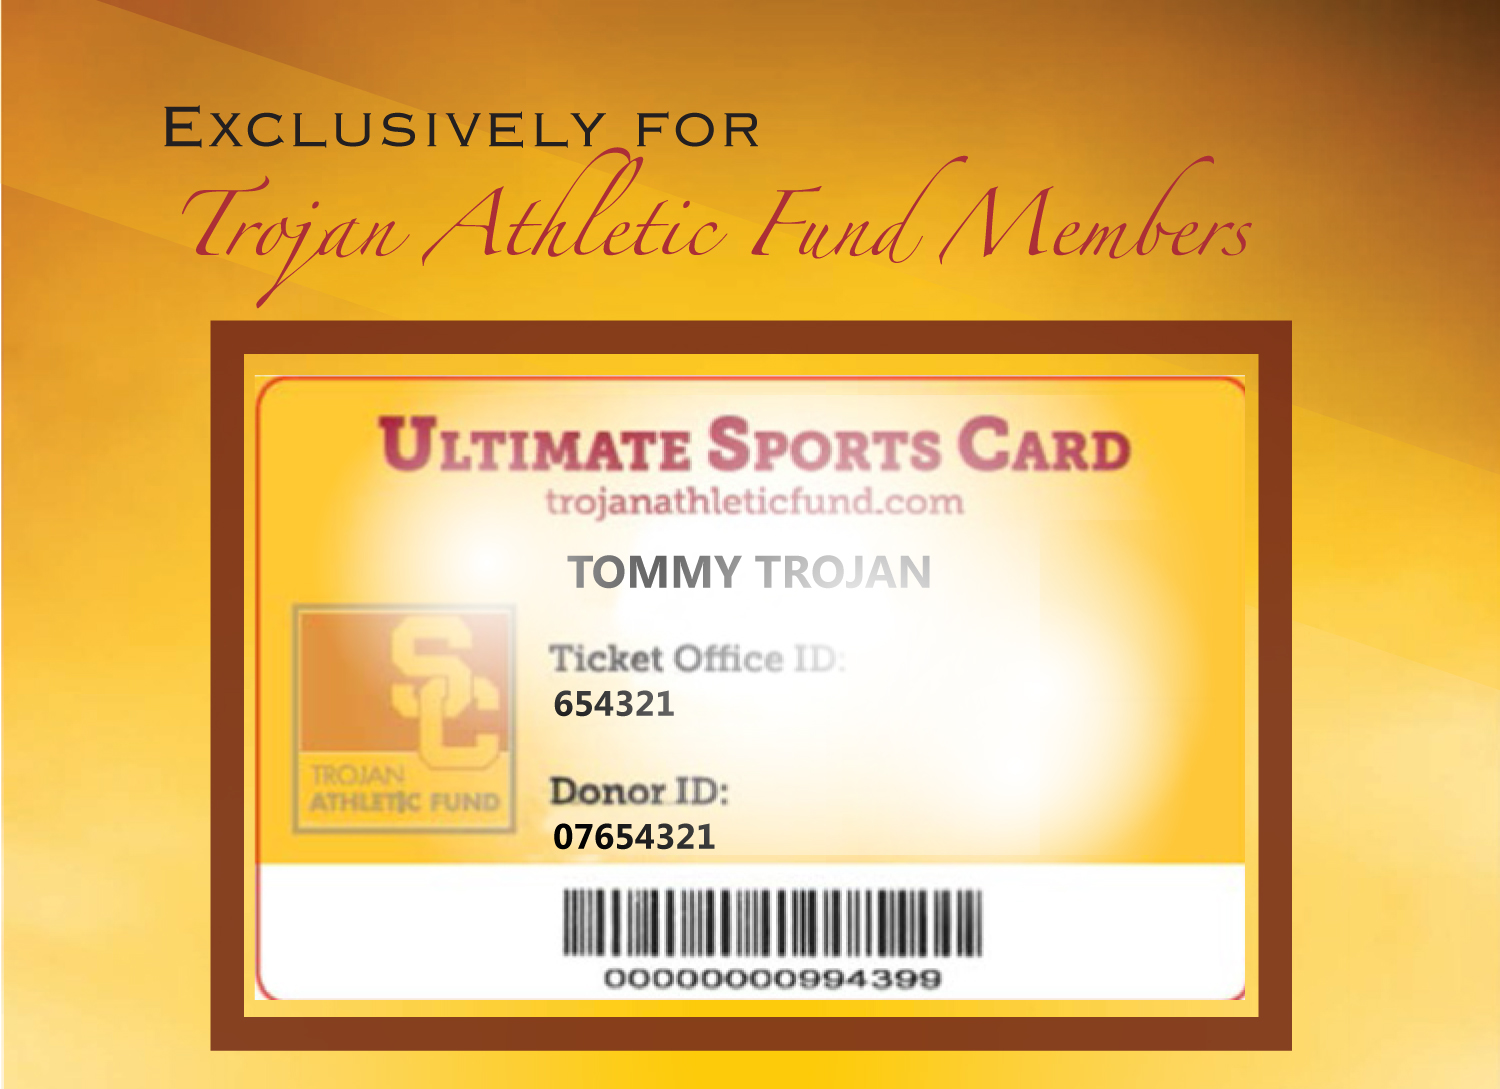 UltimateSportsCard1-frontpageimage